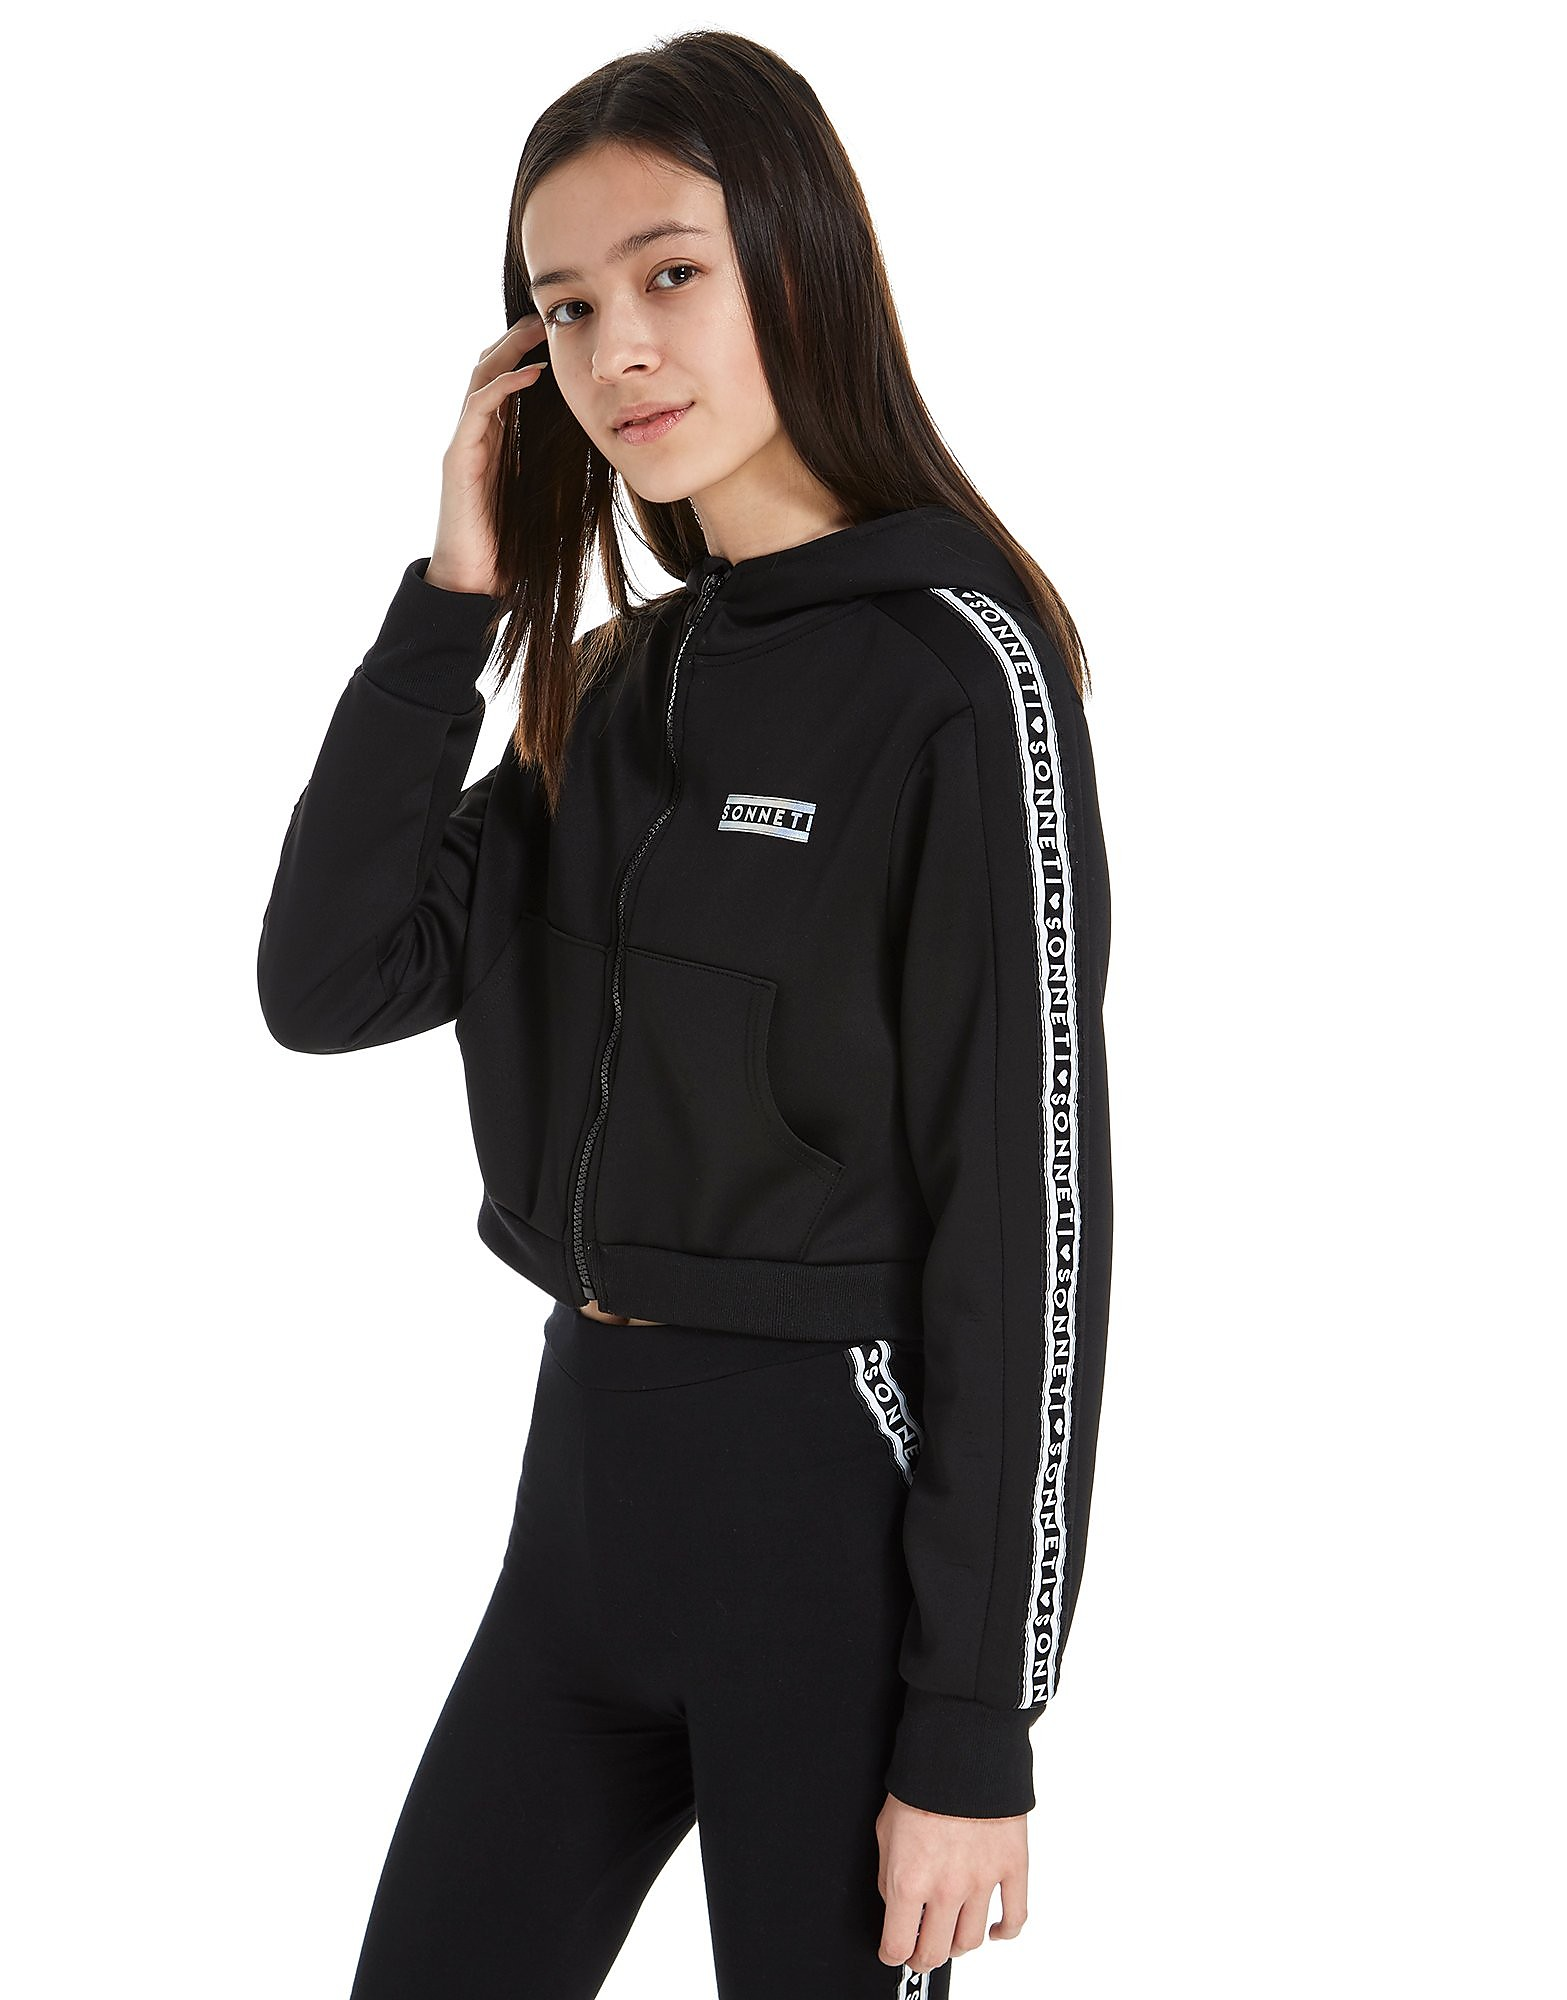 Sonneti Girls' Taper 2 Zip Hoody Junior